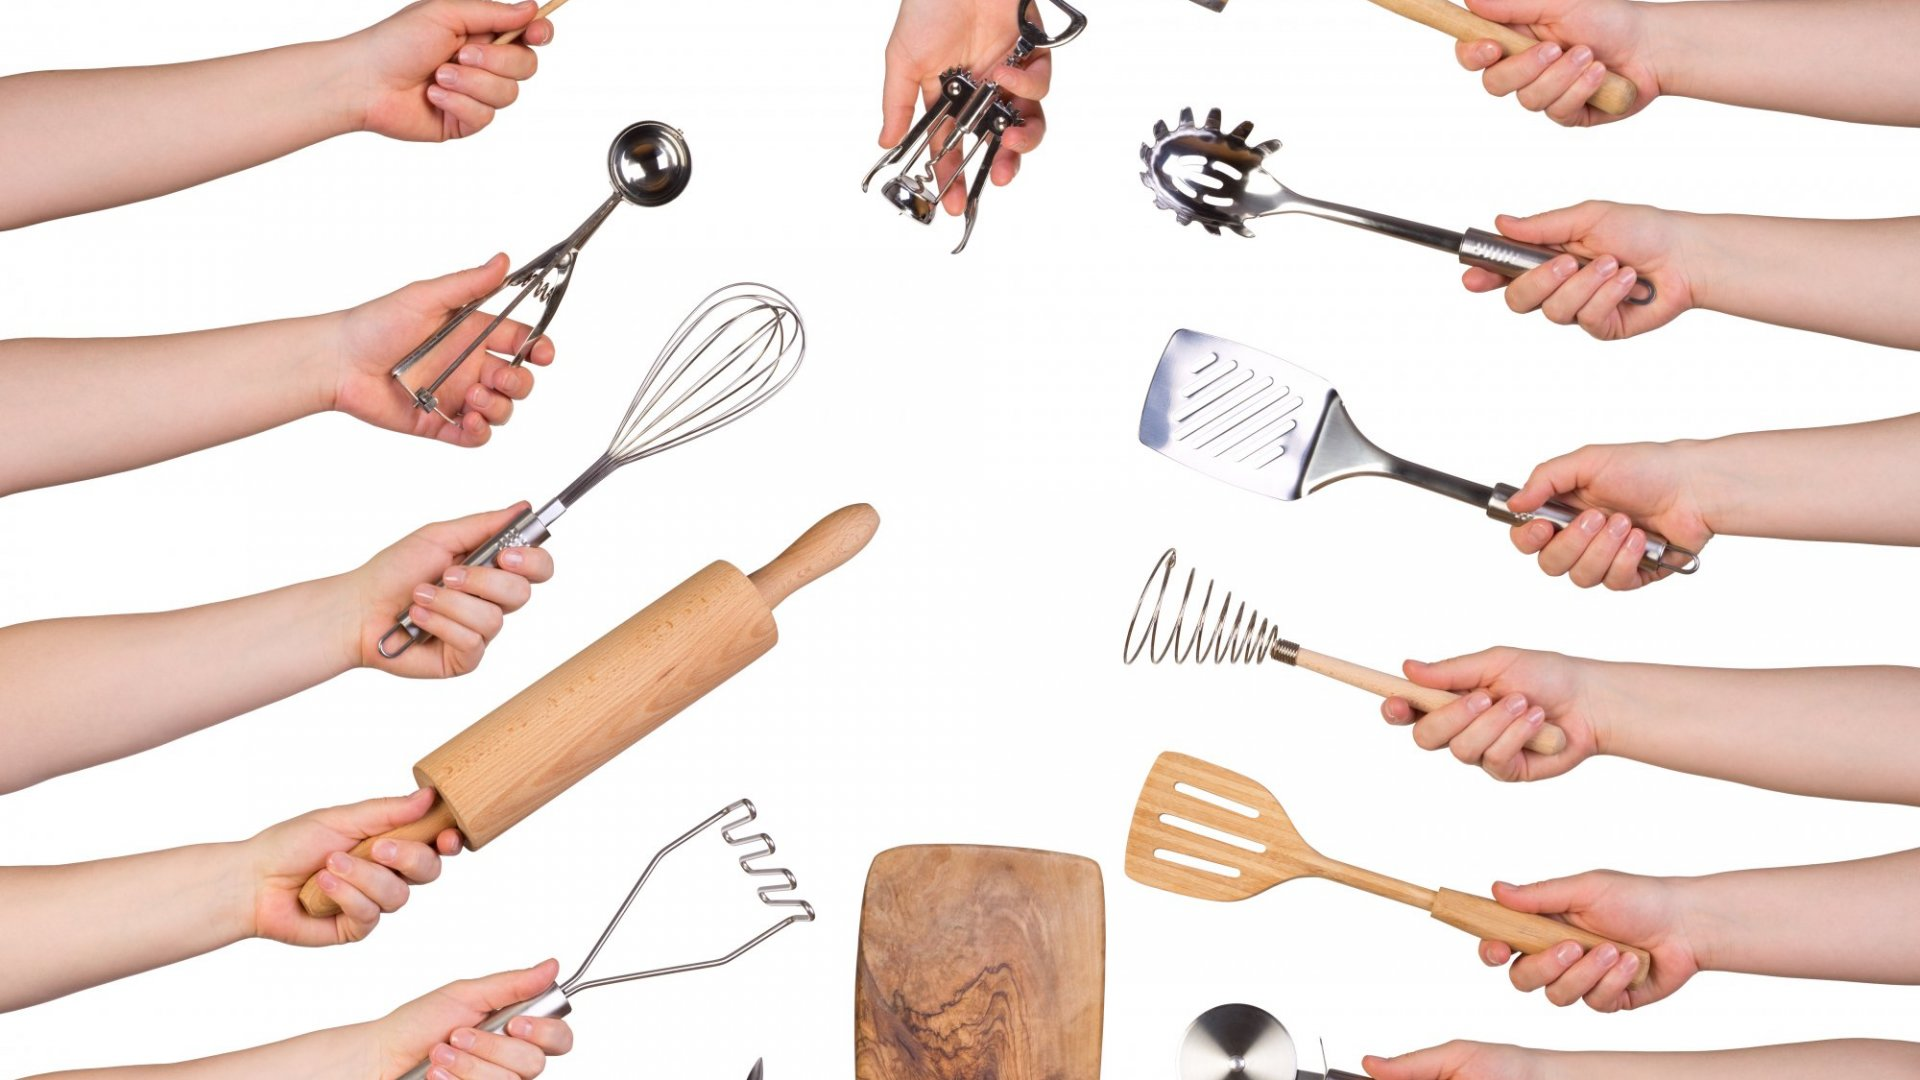 Redesigned kitchen gadgets made for the elderly and disabled are better for us all.